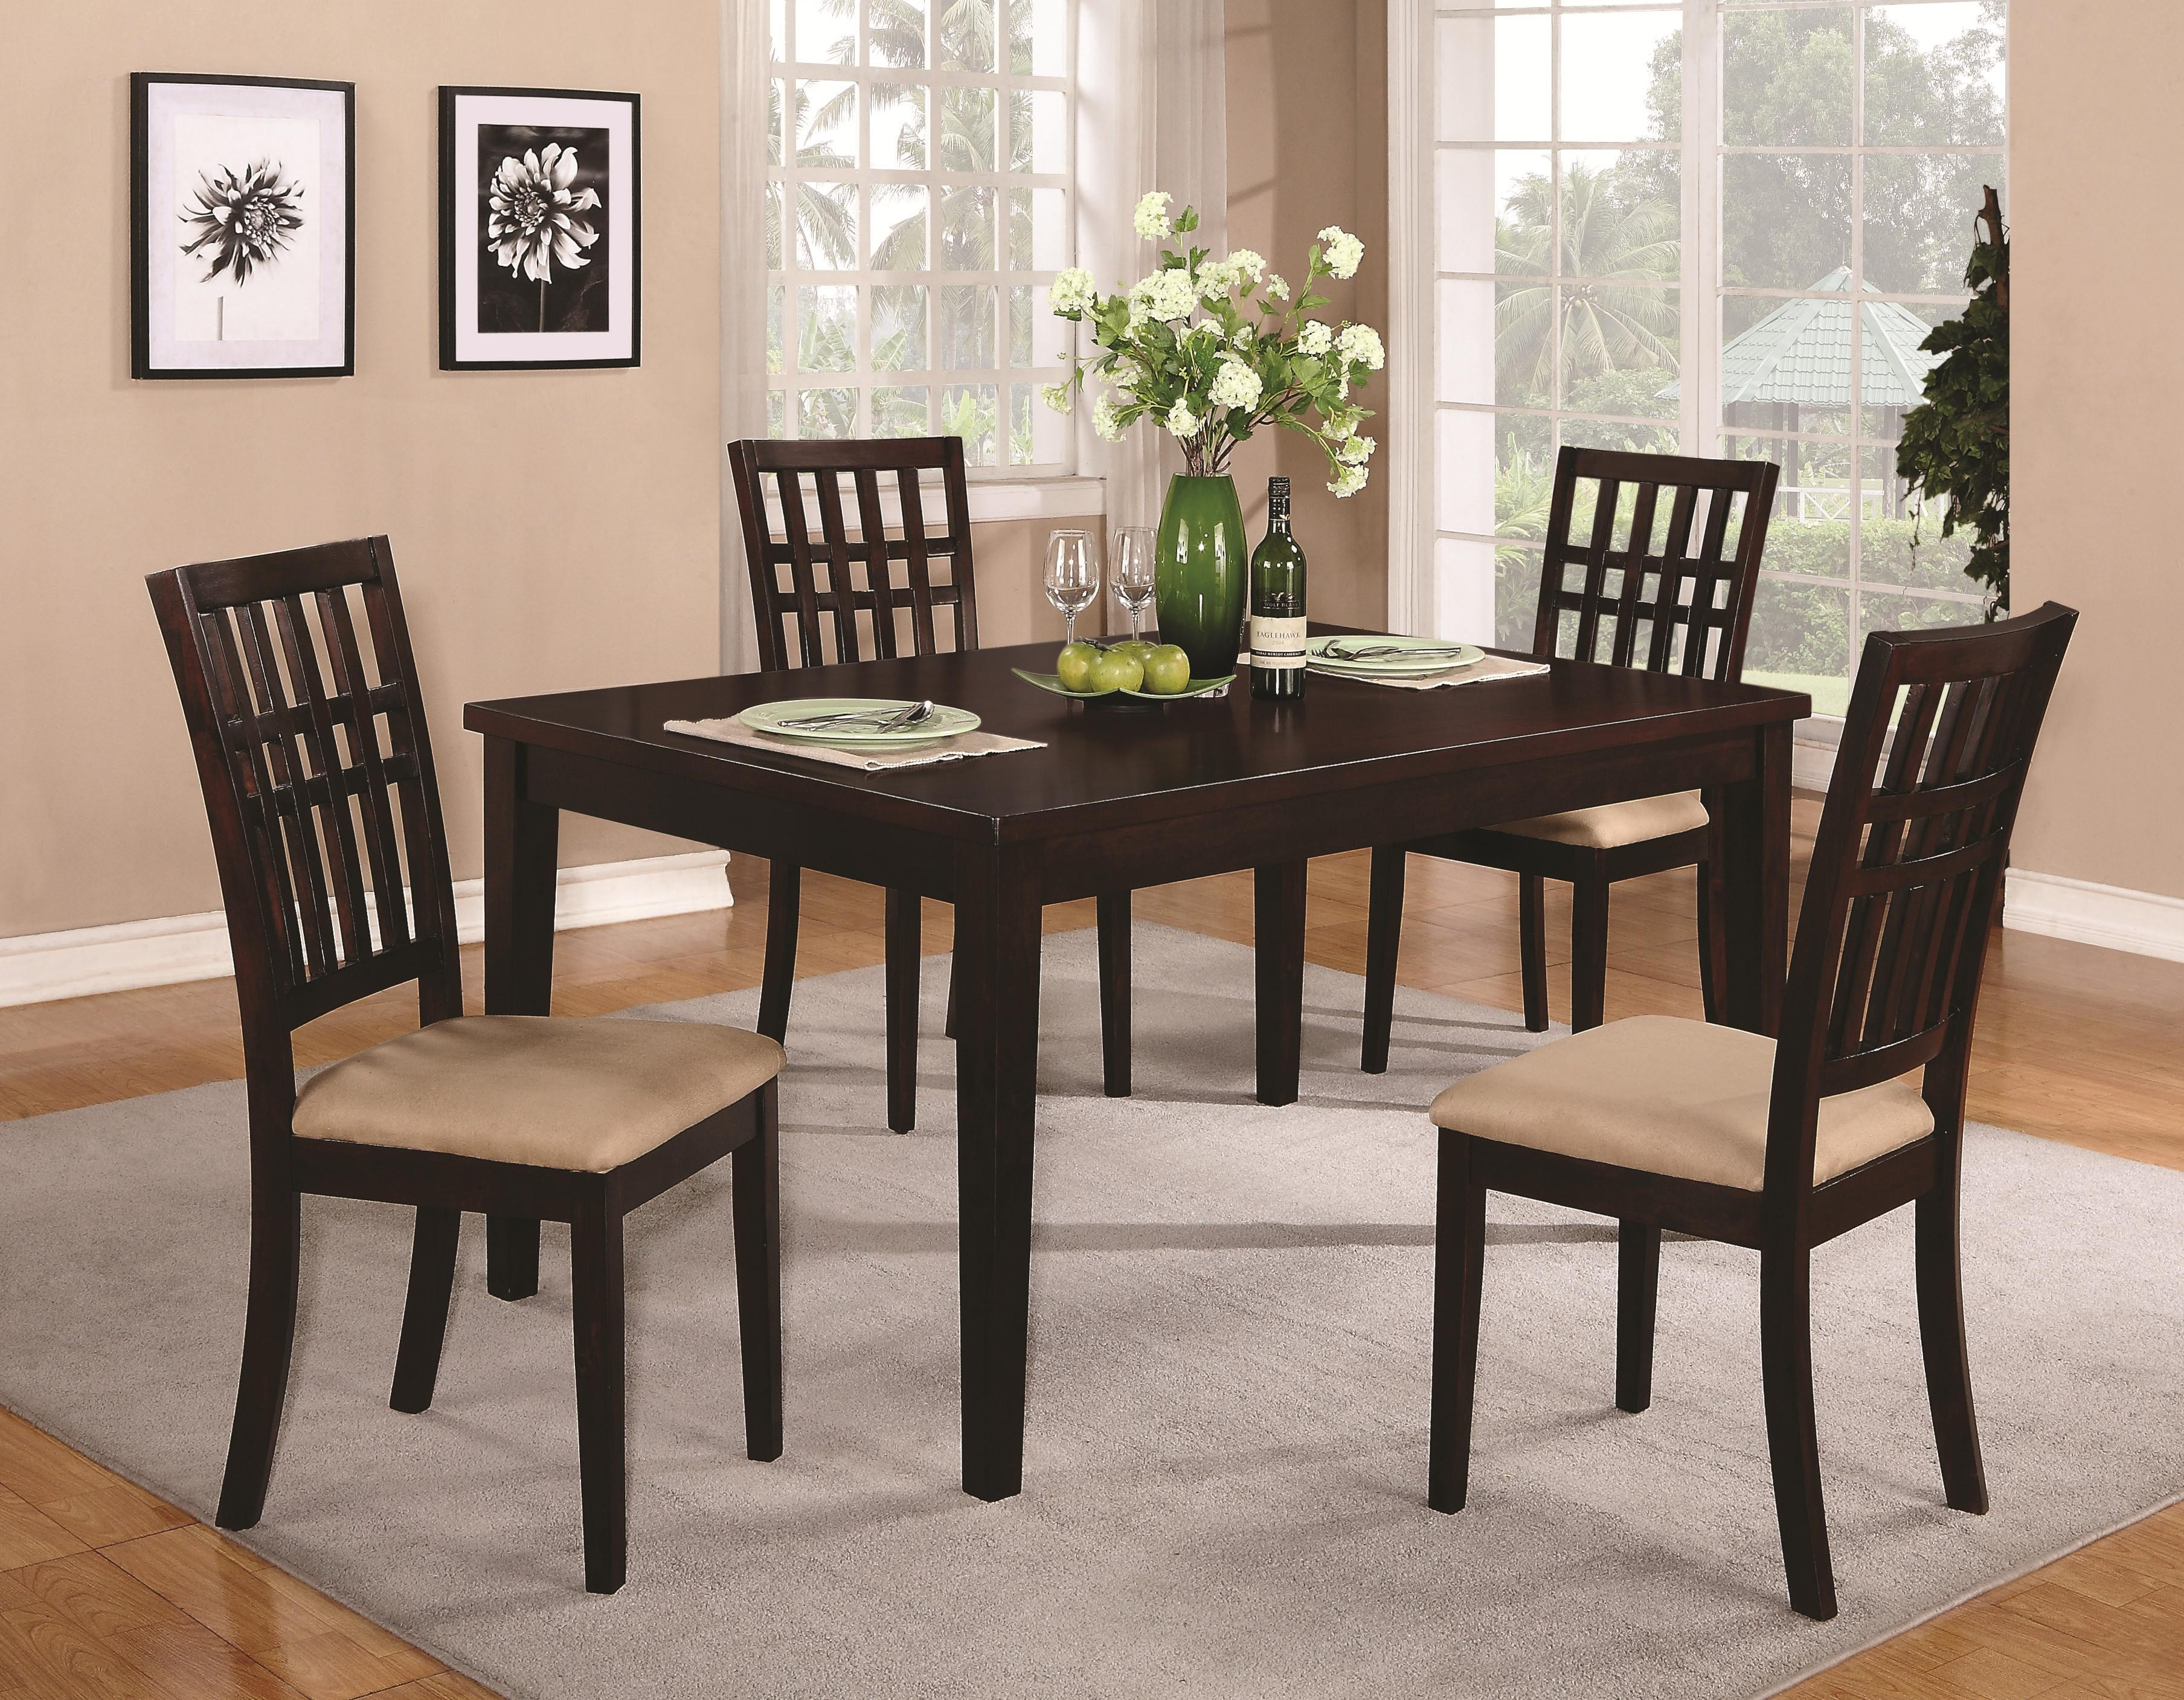 Designer Tische Esszimmer Casual Dining Table Co 103341 Contemporary Dining